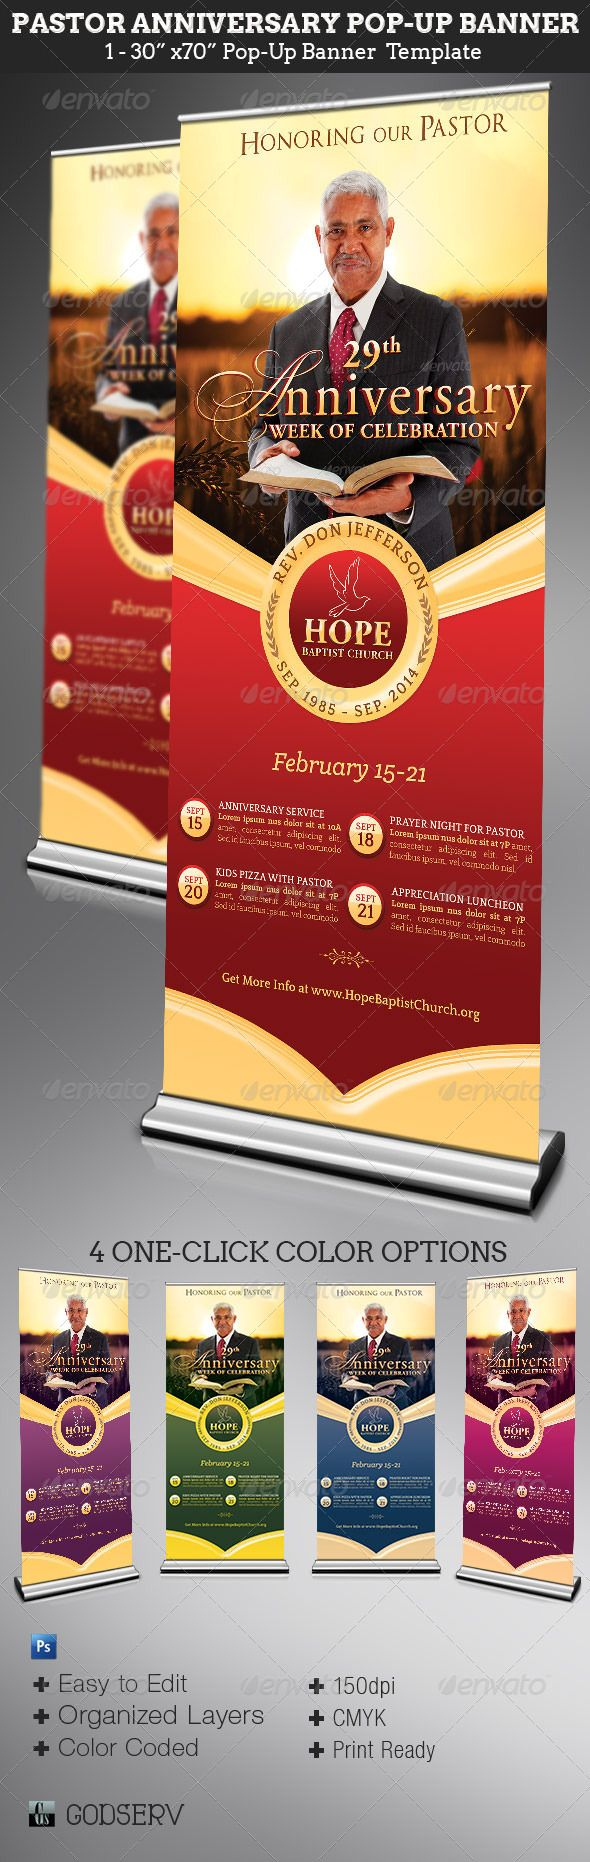 39 best church anniversary images on pinterest church ideas pastor anniversary pop up banner template m4hsunfo